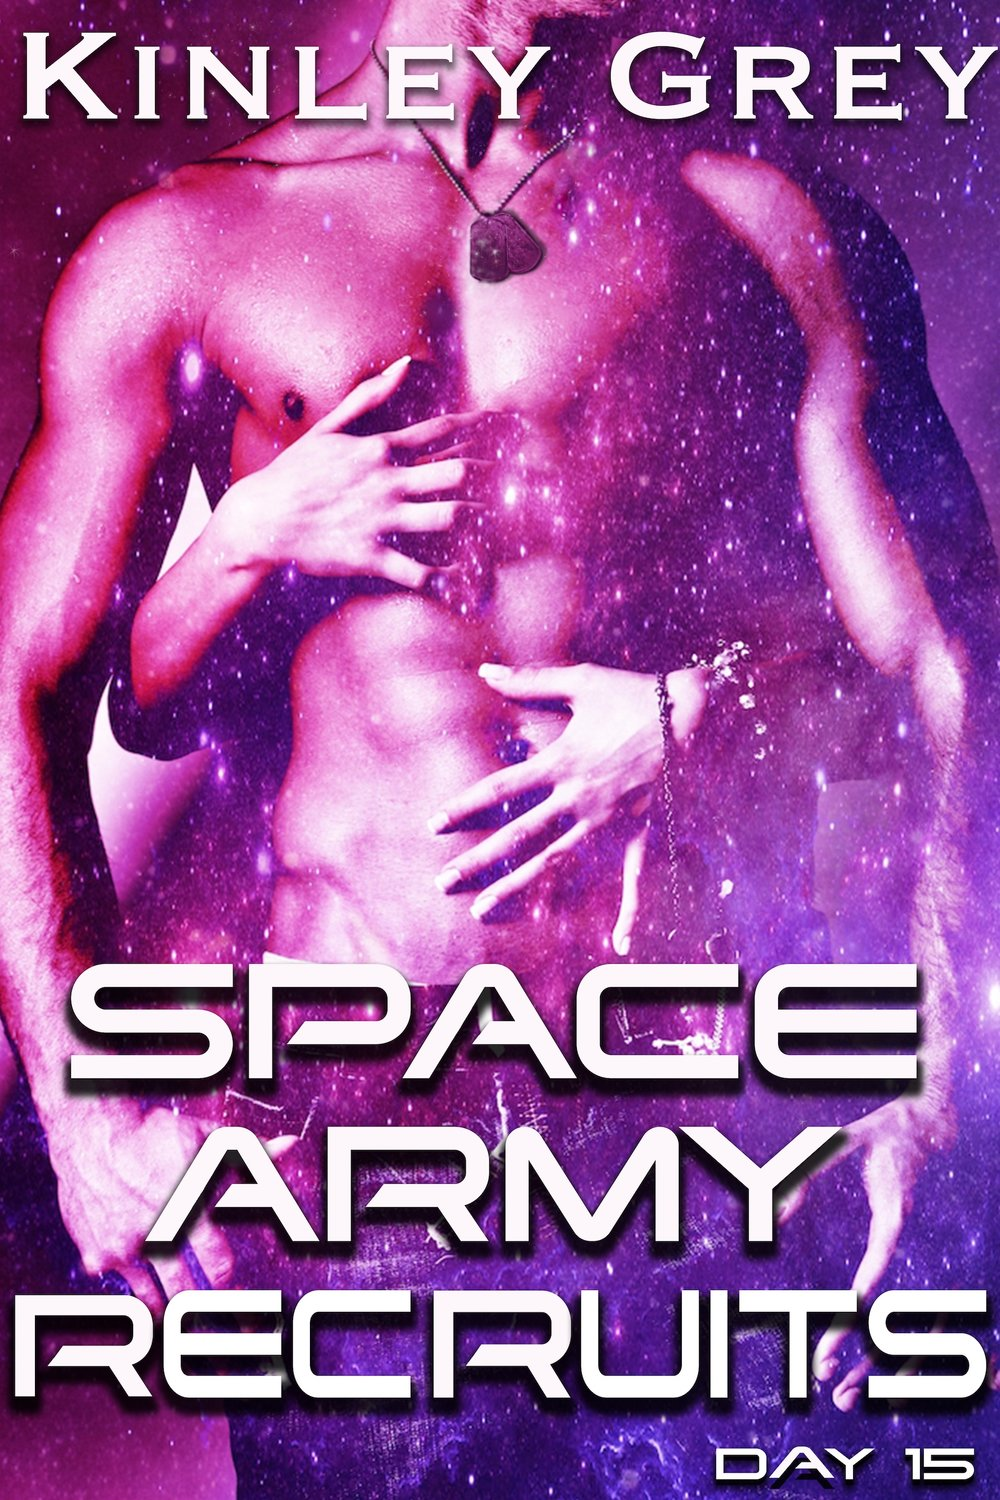 Space Army Orgy